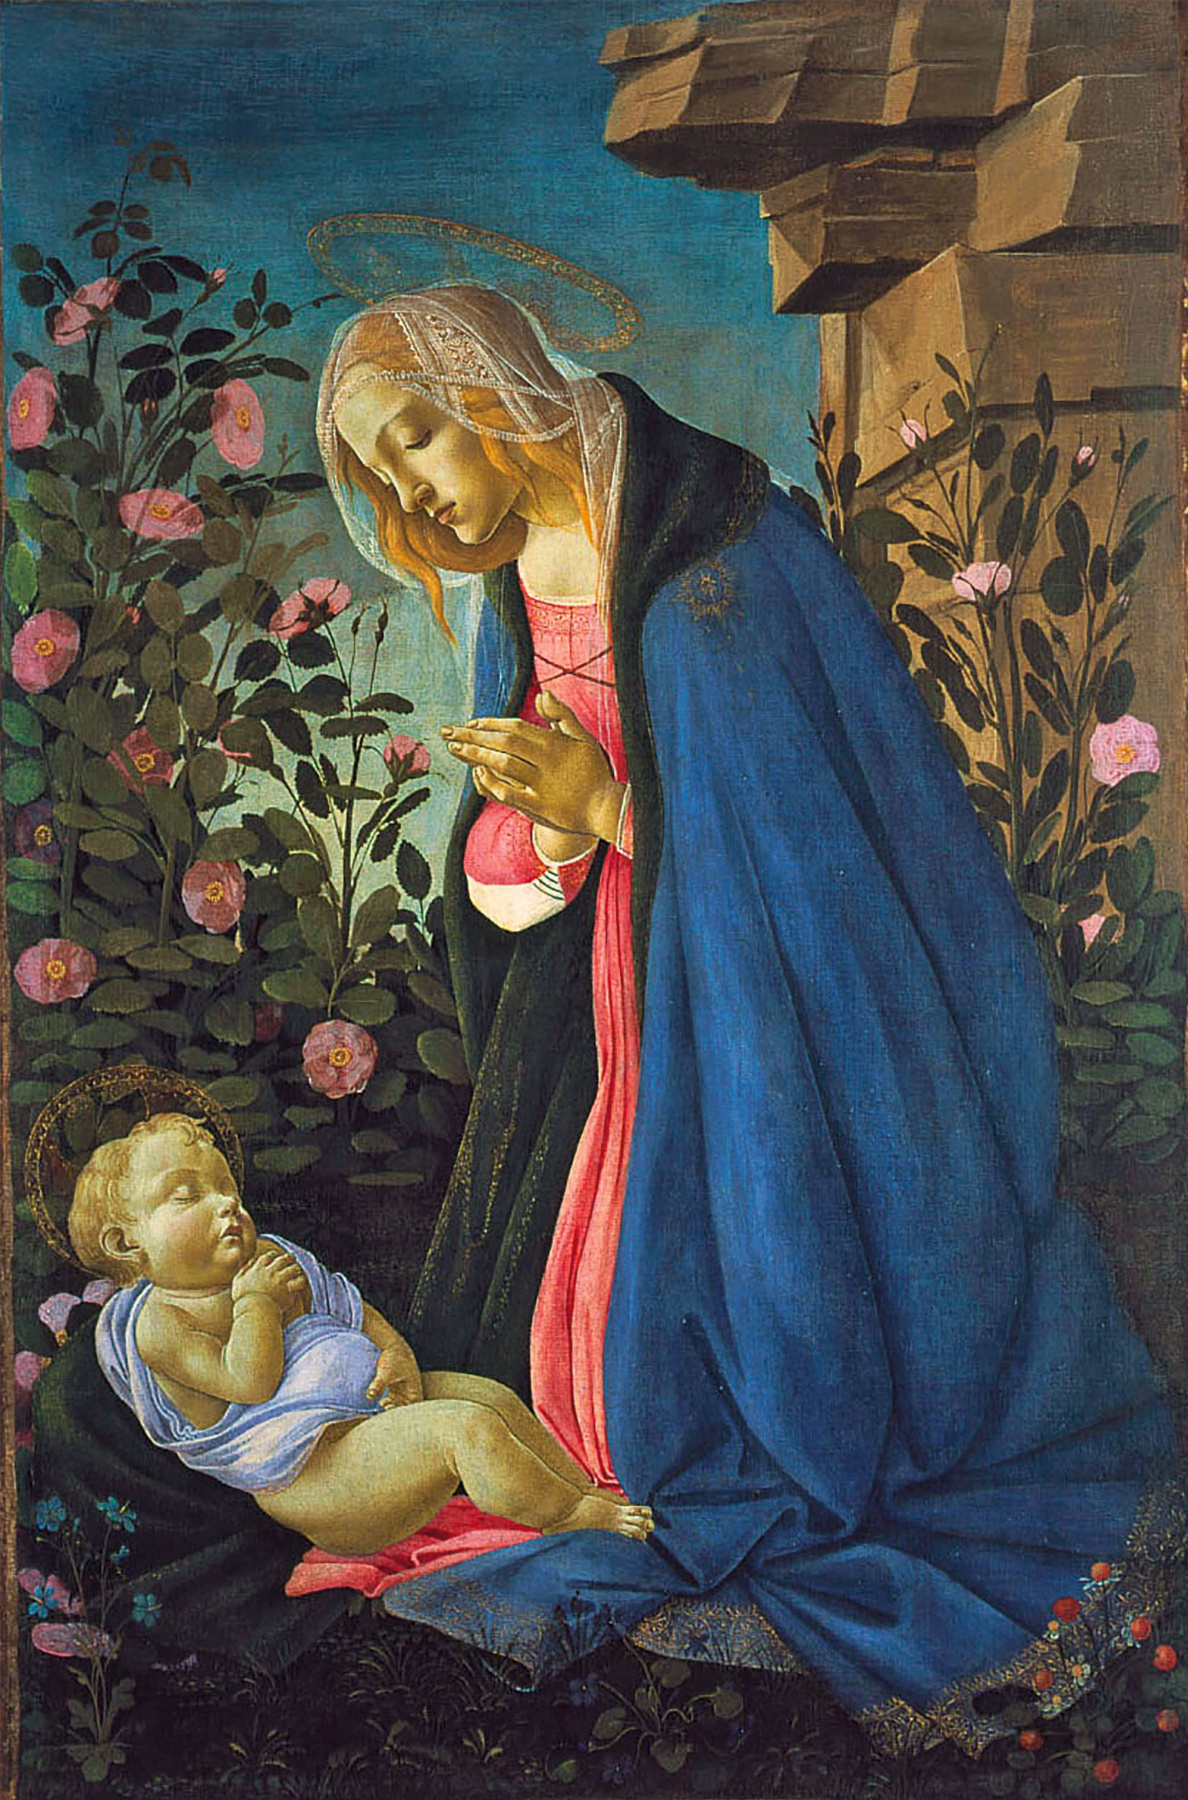 Sandro Botticelli. Madonna in front of a sleeping baby